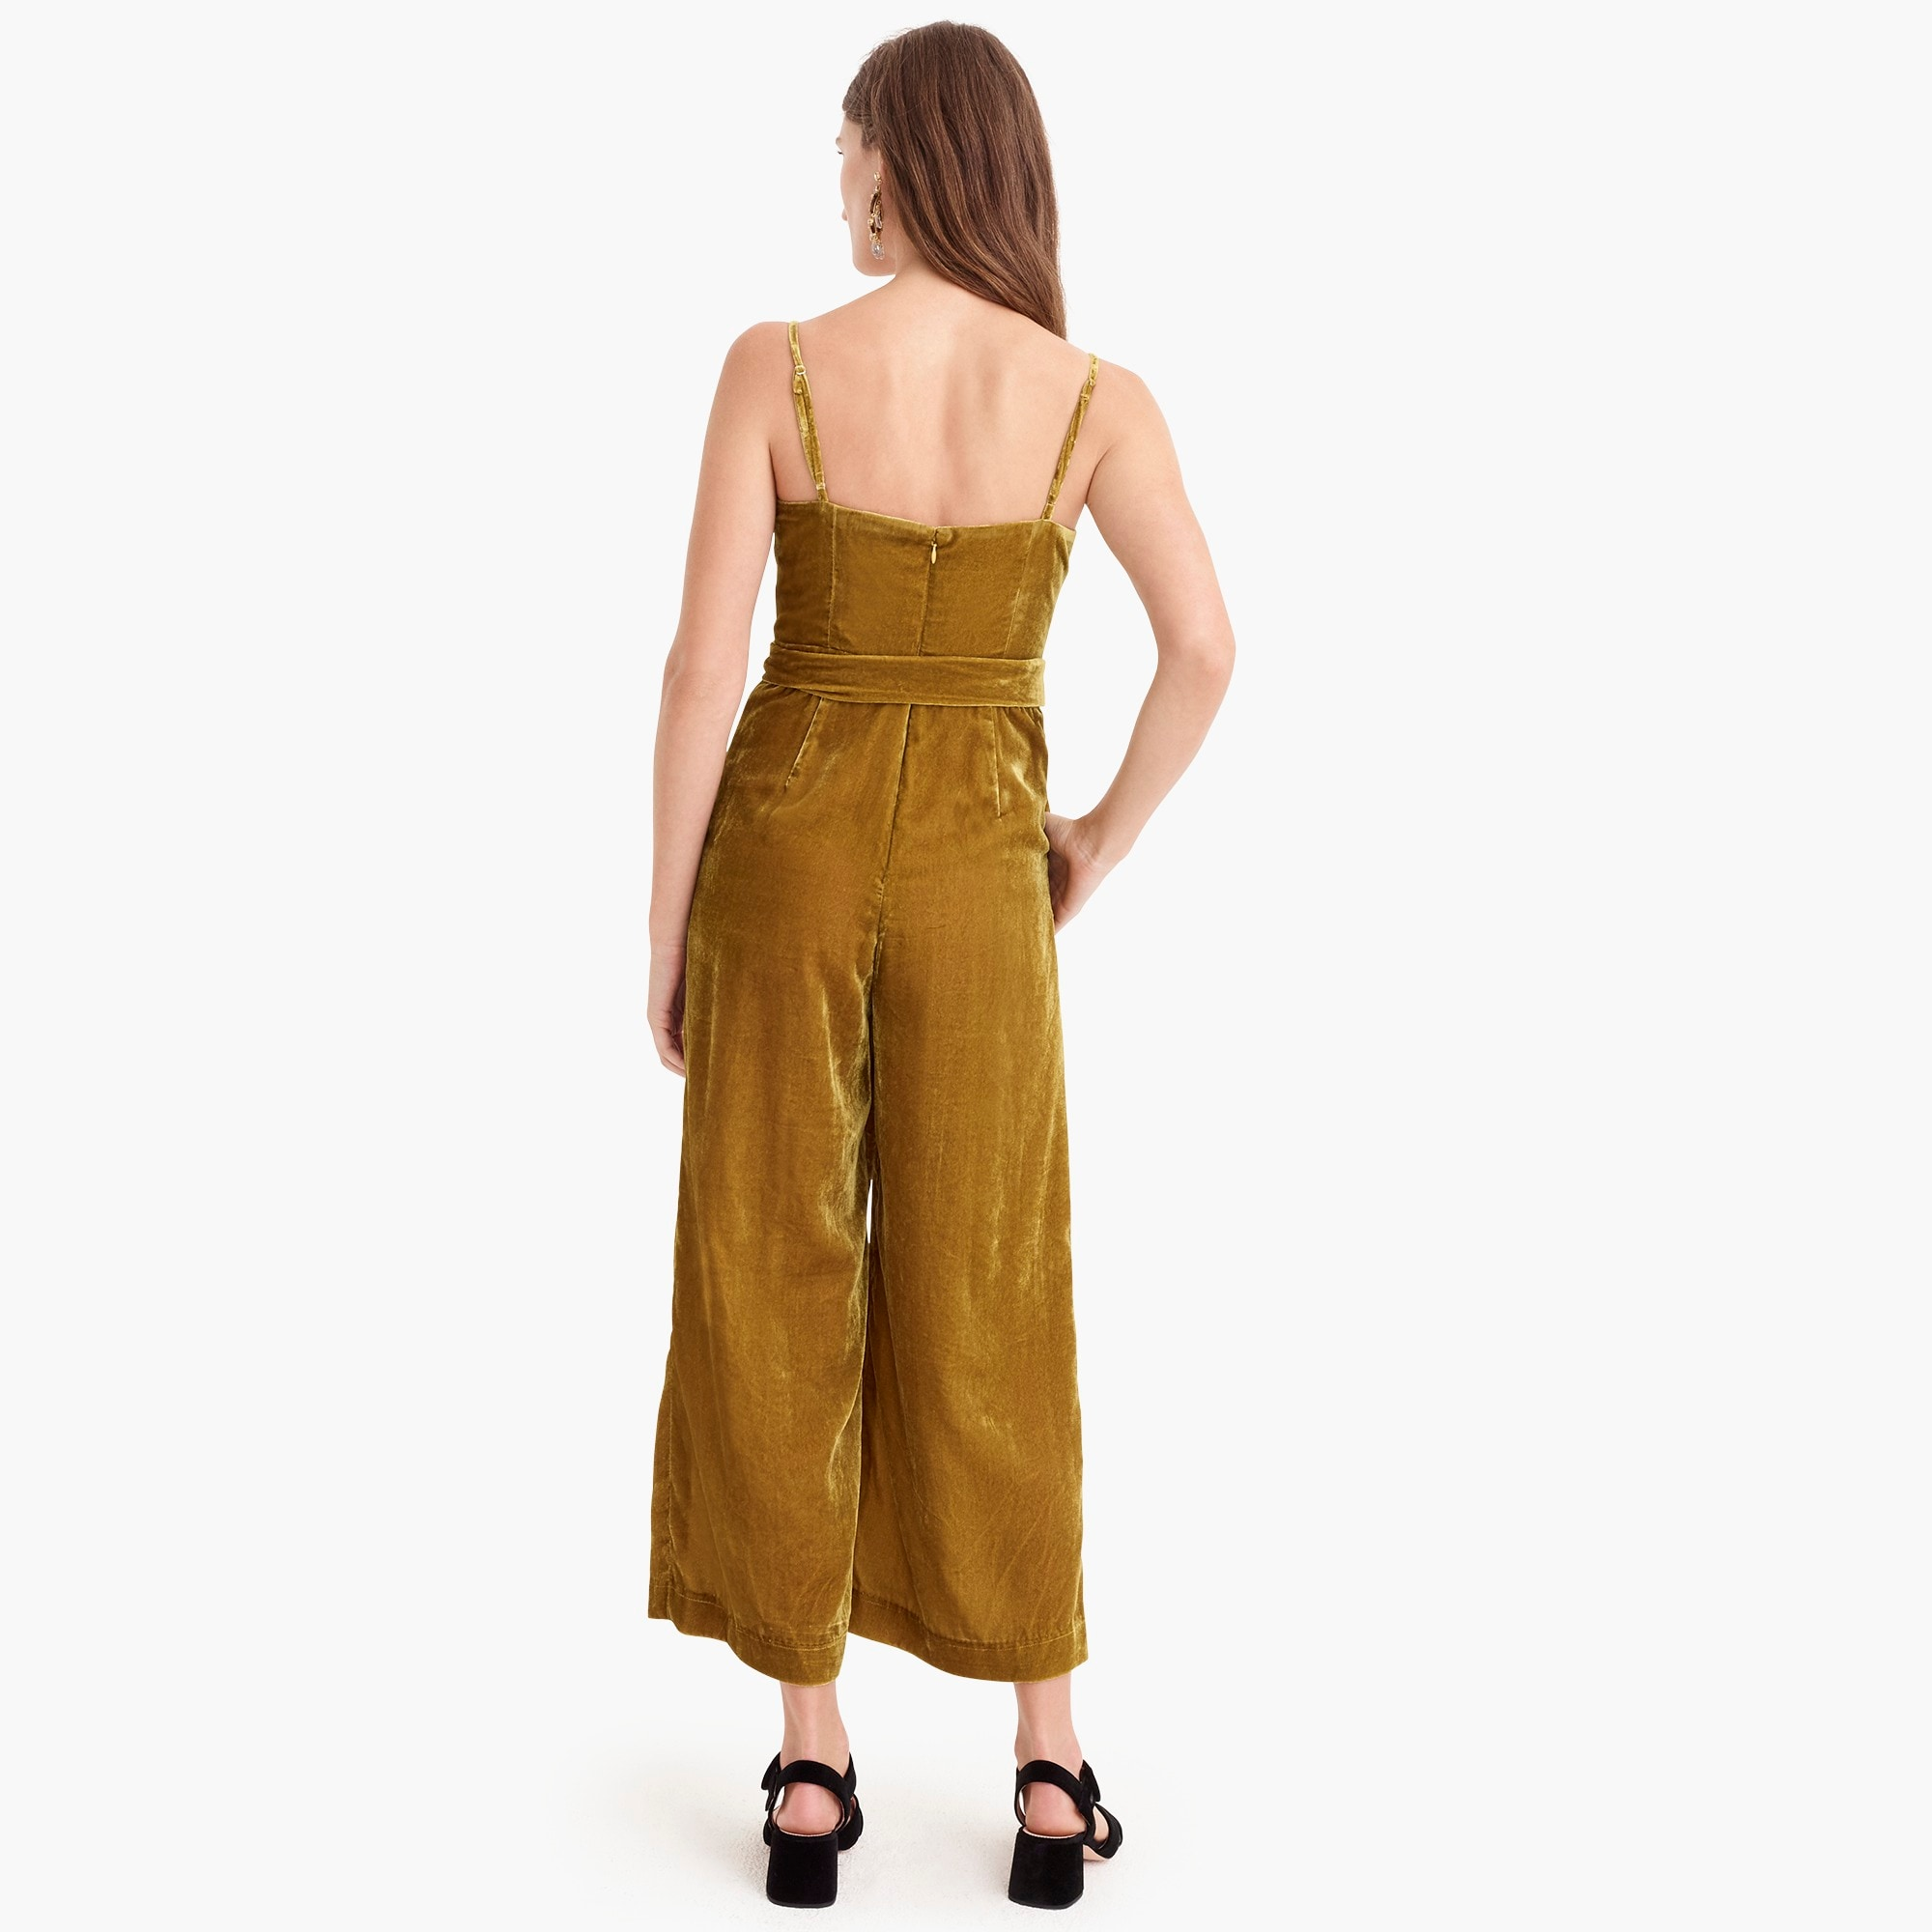 Image 5 for Petite velvet jumpsuit with tie